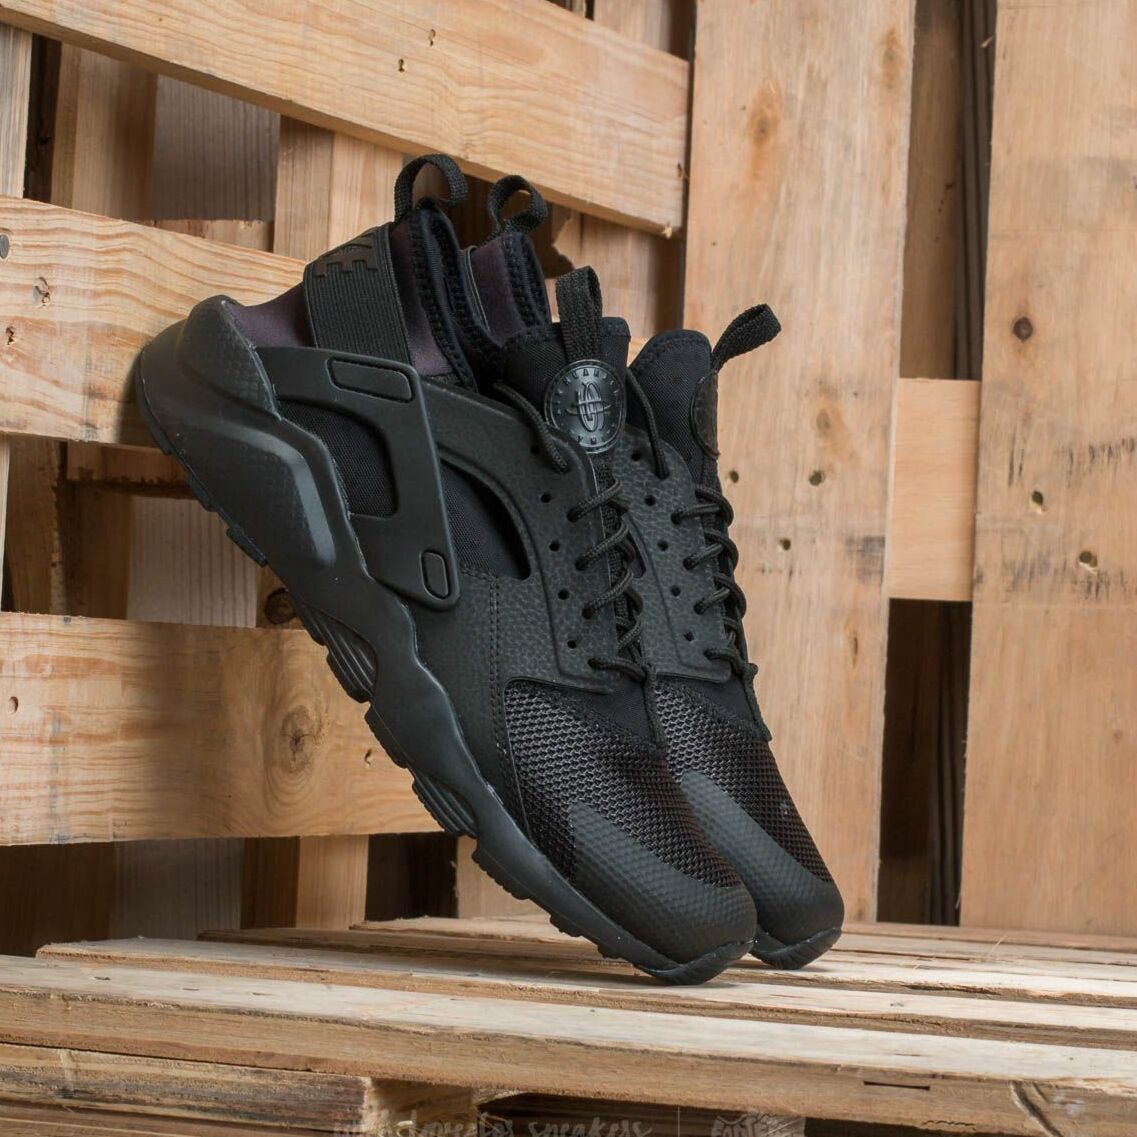 Nike Air Huarache Run Ultra Gs Black/ Black EUR 38.5